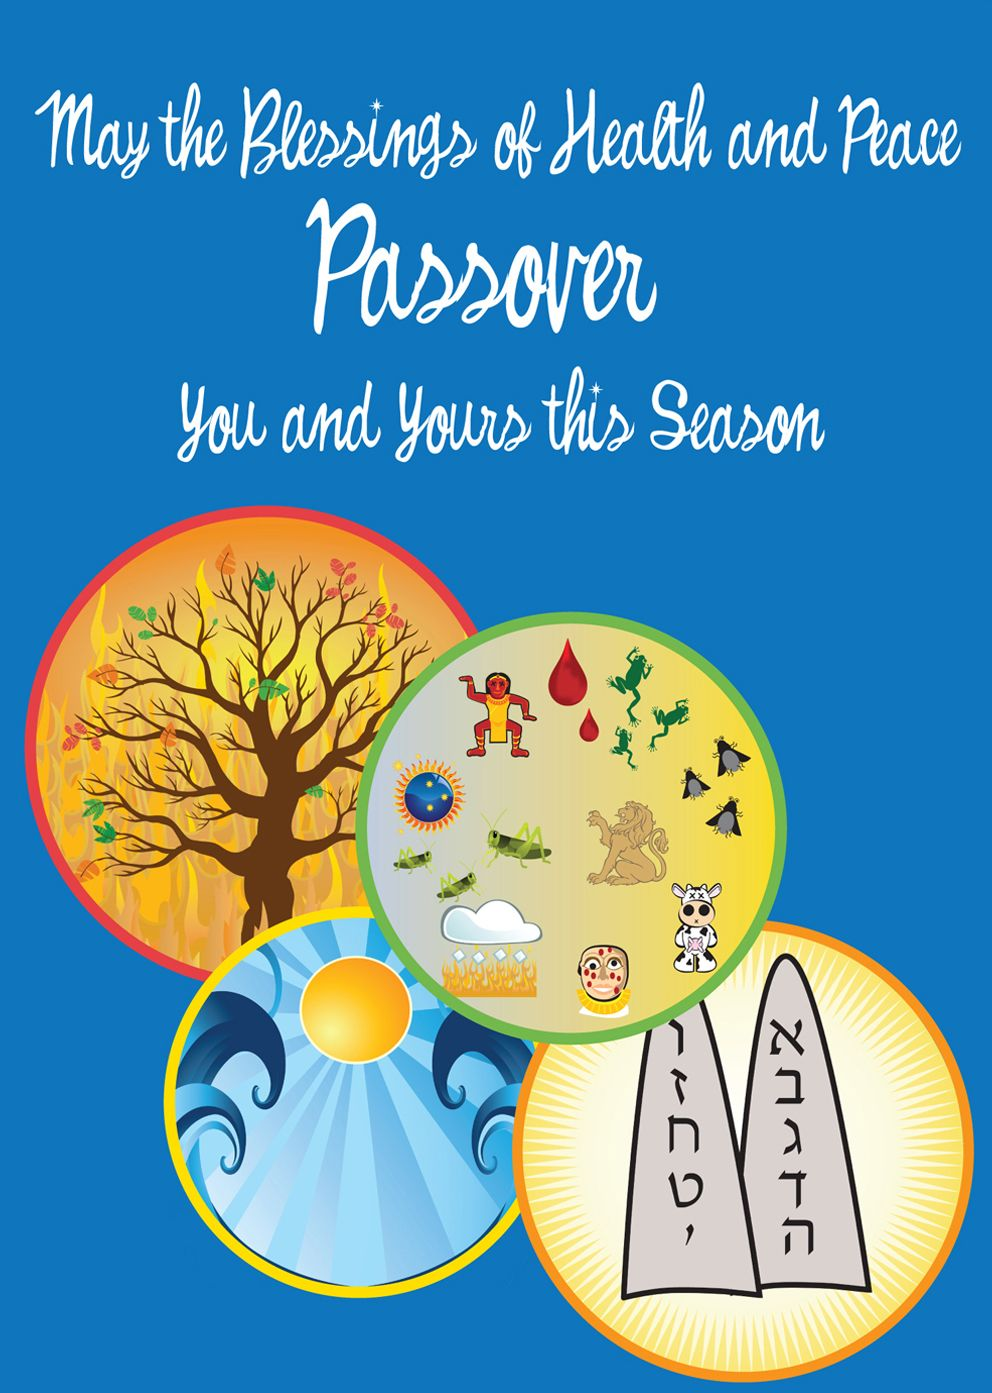 Happy Passover Online Greeting Cards Passover Day Hd Images With